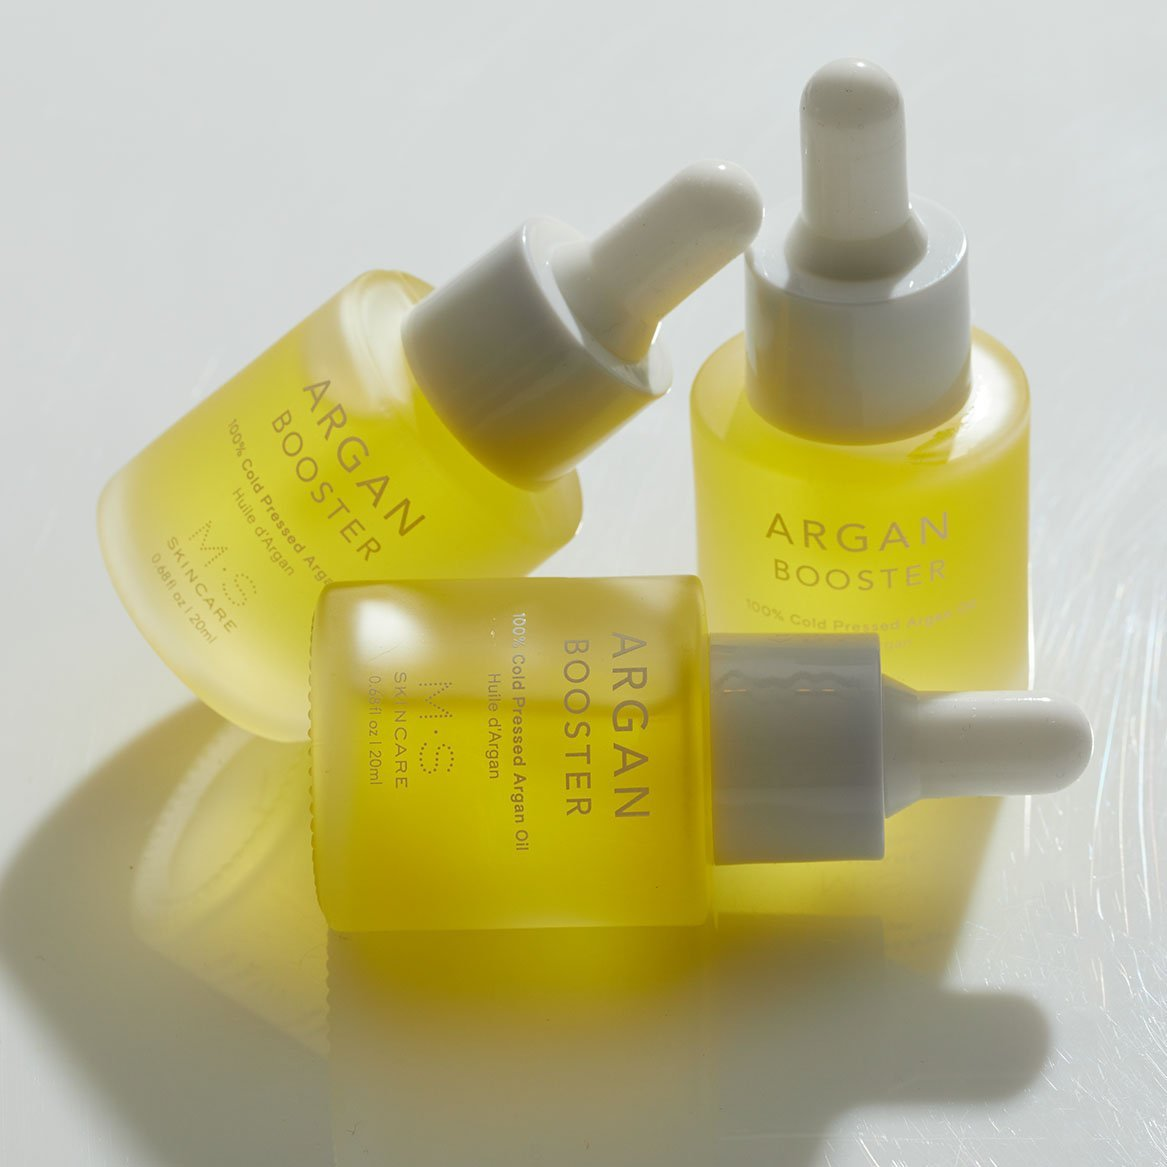 ARGAN | Booster Oil - Mullein and Sparrow